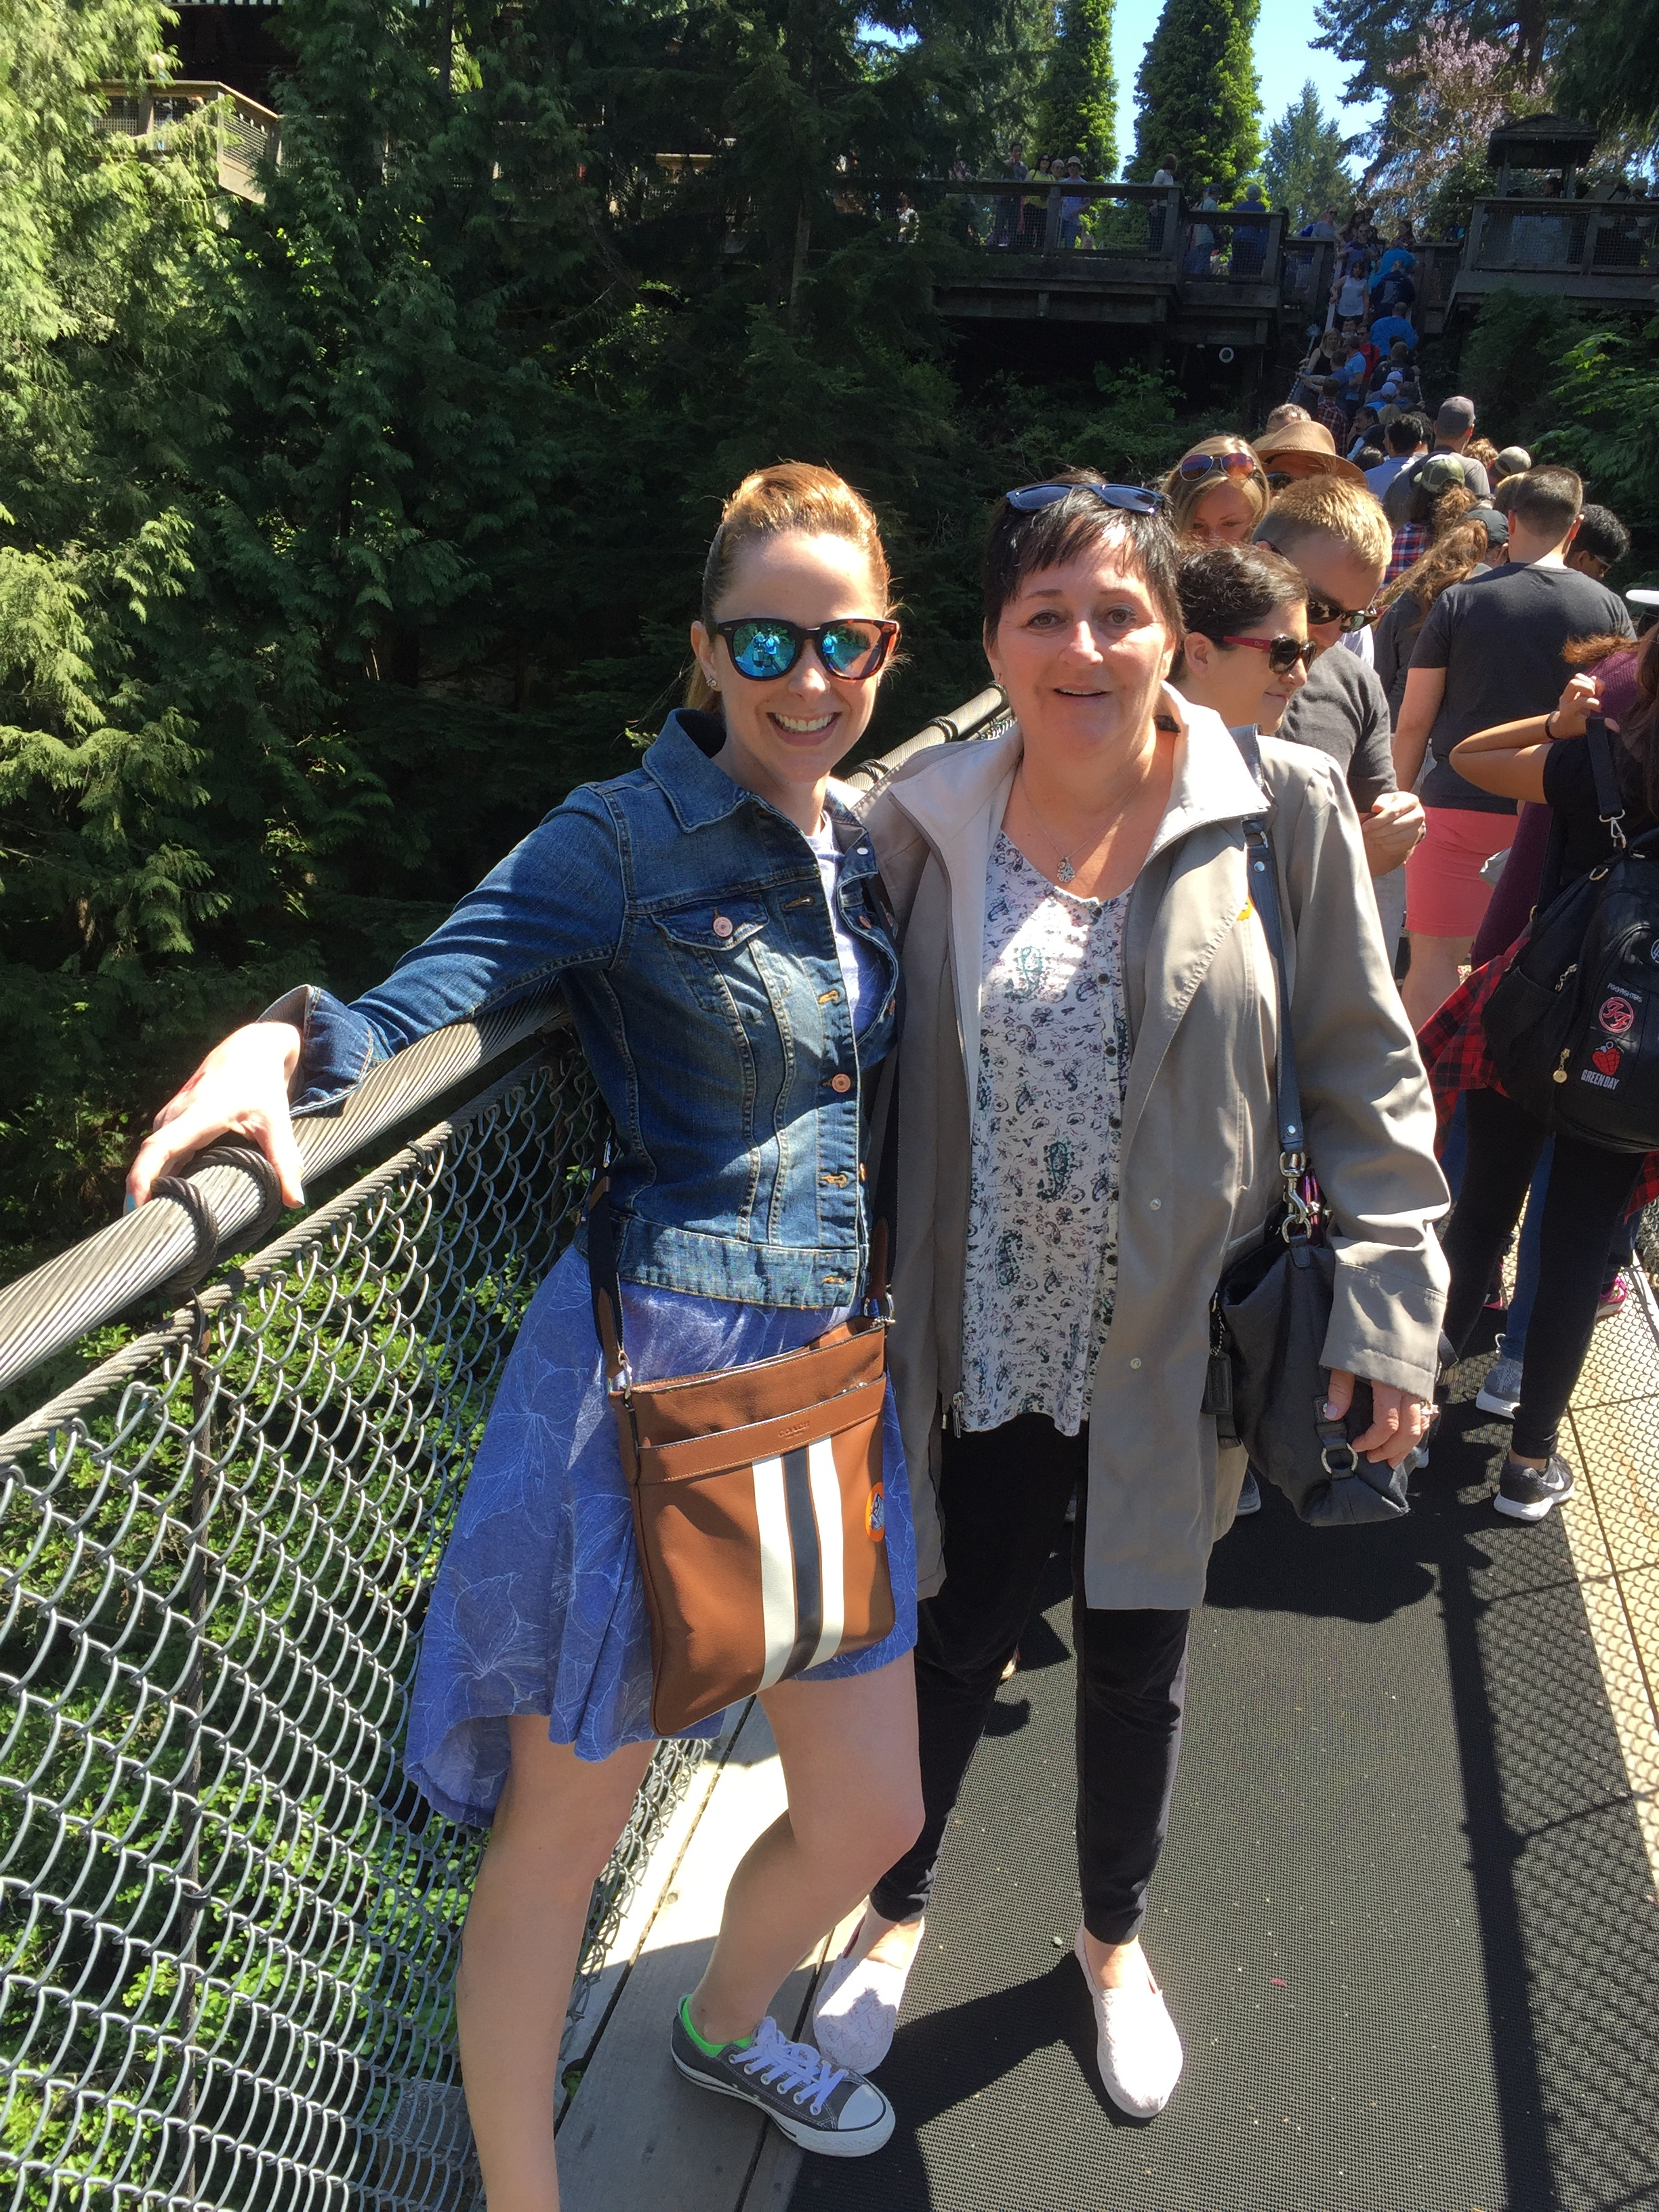 Mom & I on a suspension bridge in Vancouver, BC - May 2017 (She was WAY outside her comfort zone)